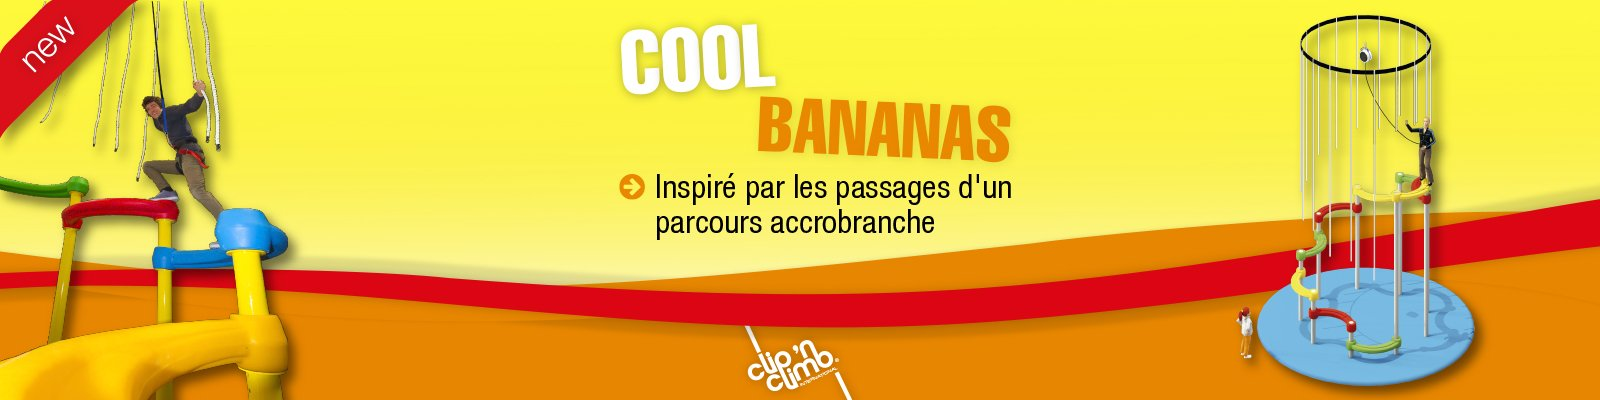 FR_COOLBANANAS_Website_1600x400px